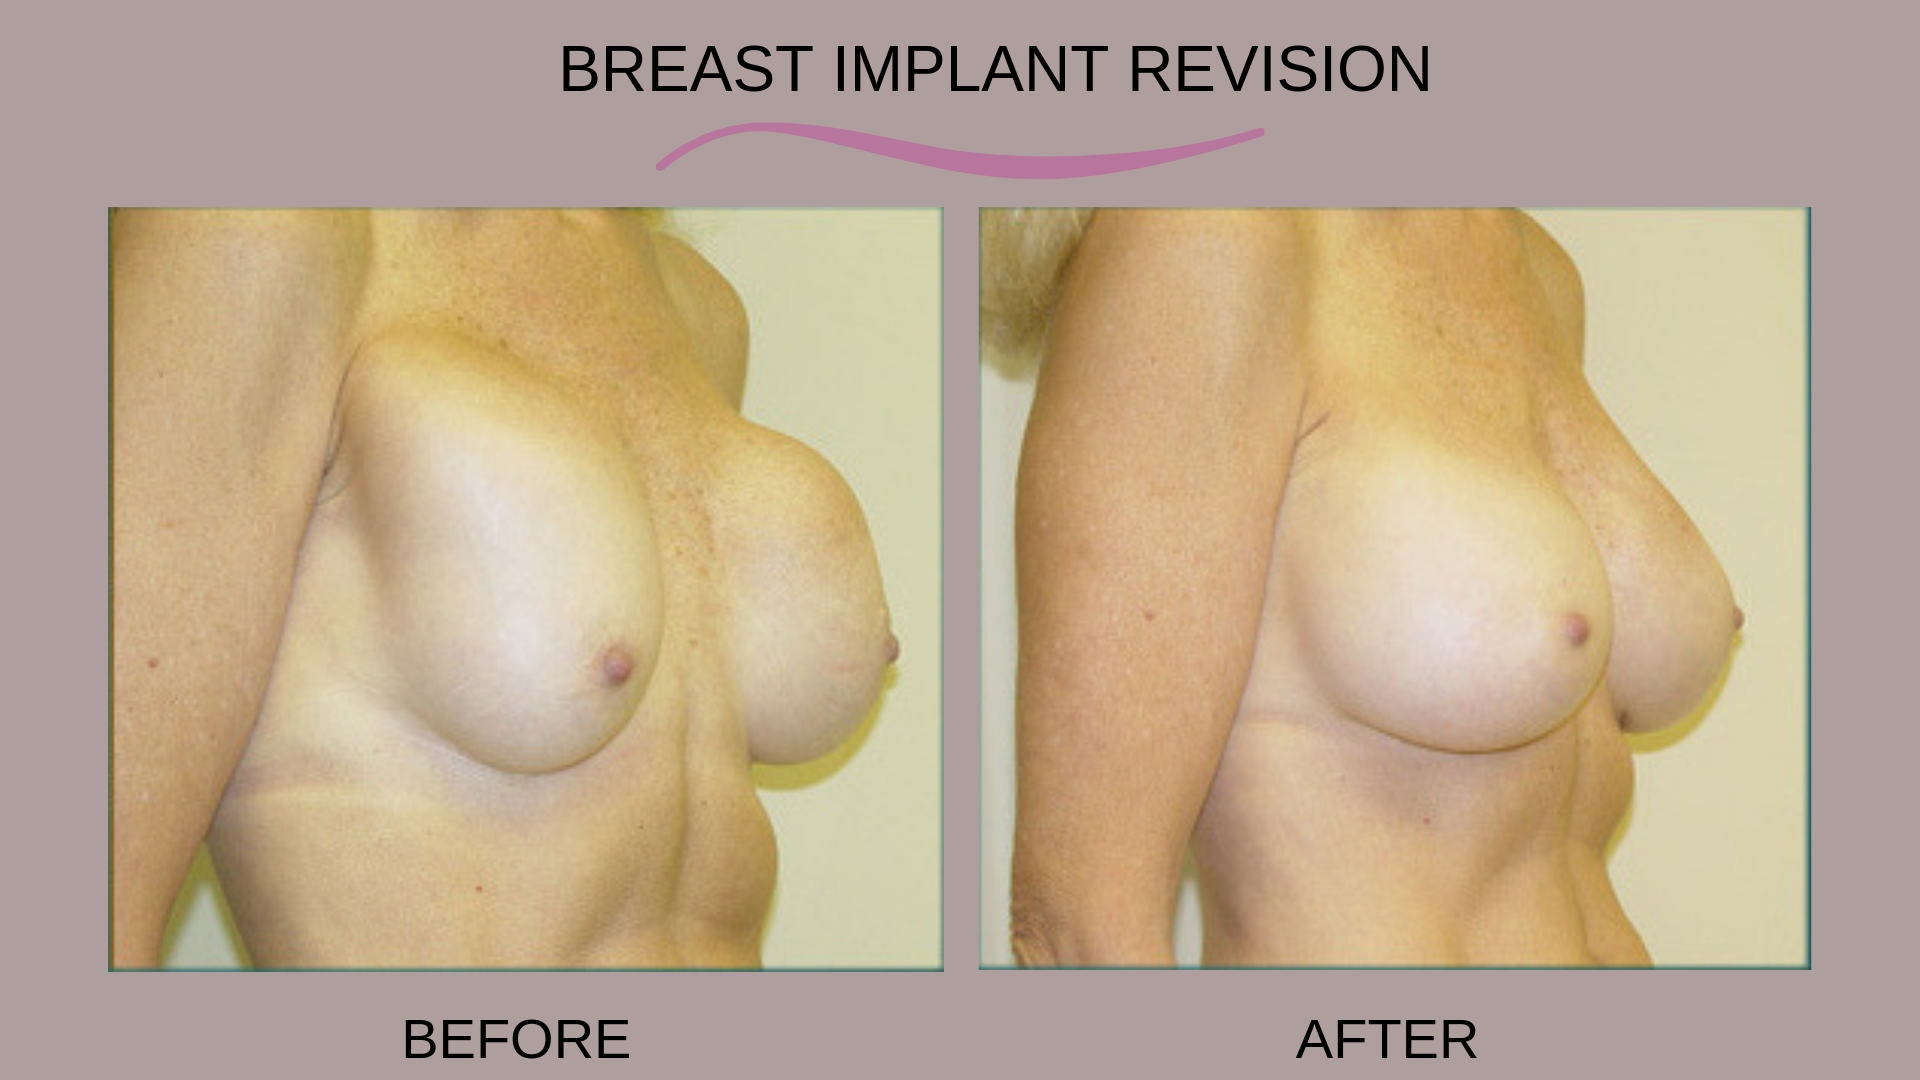 Breast Implant Revision Before and After Photos